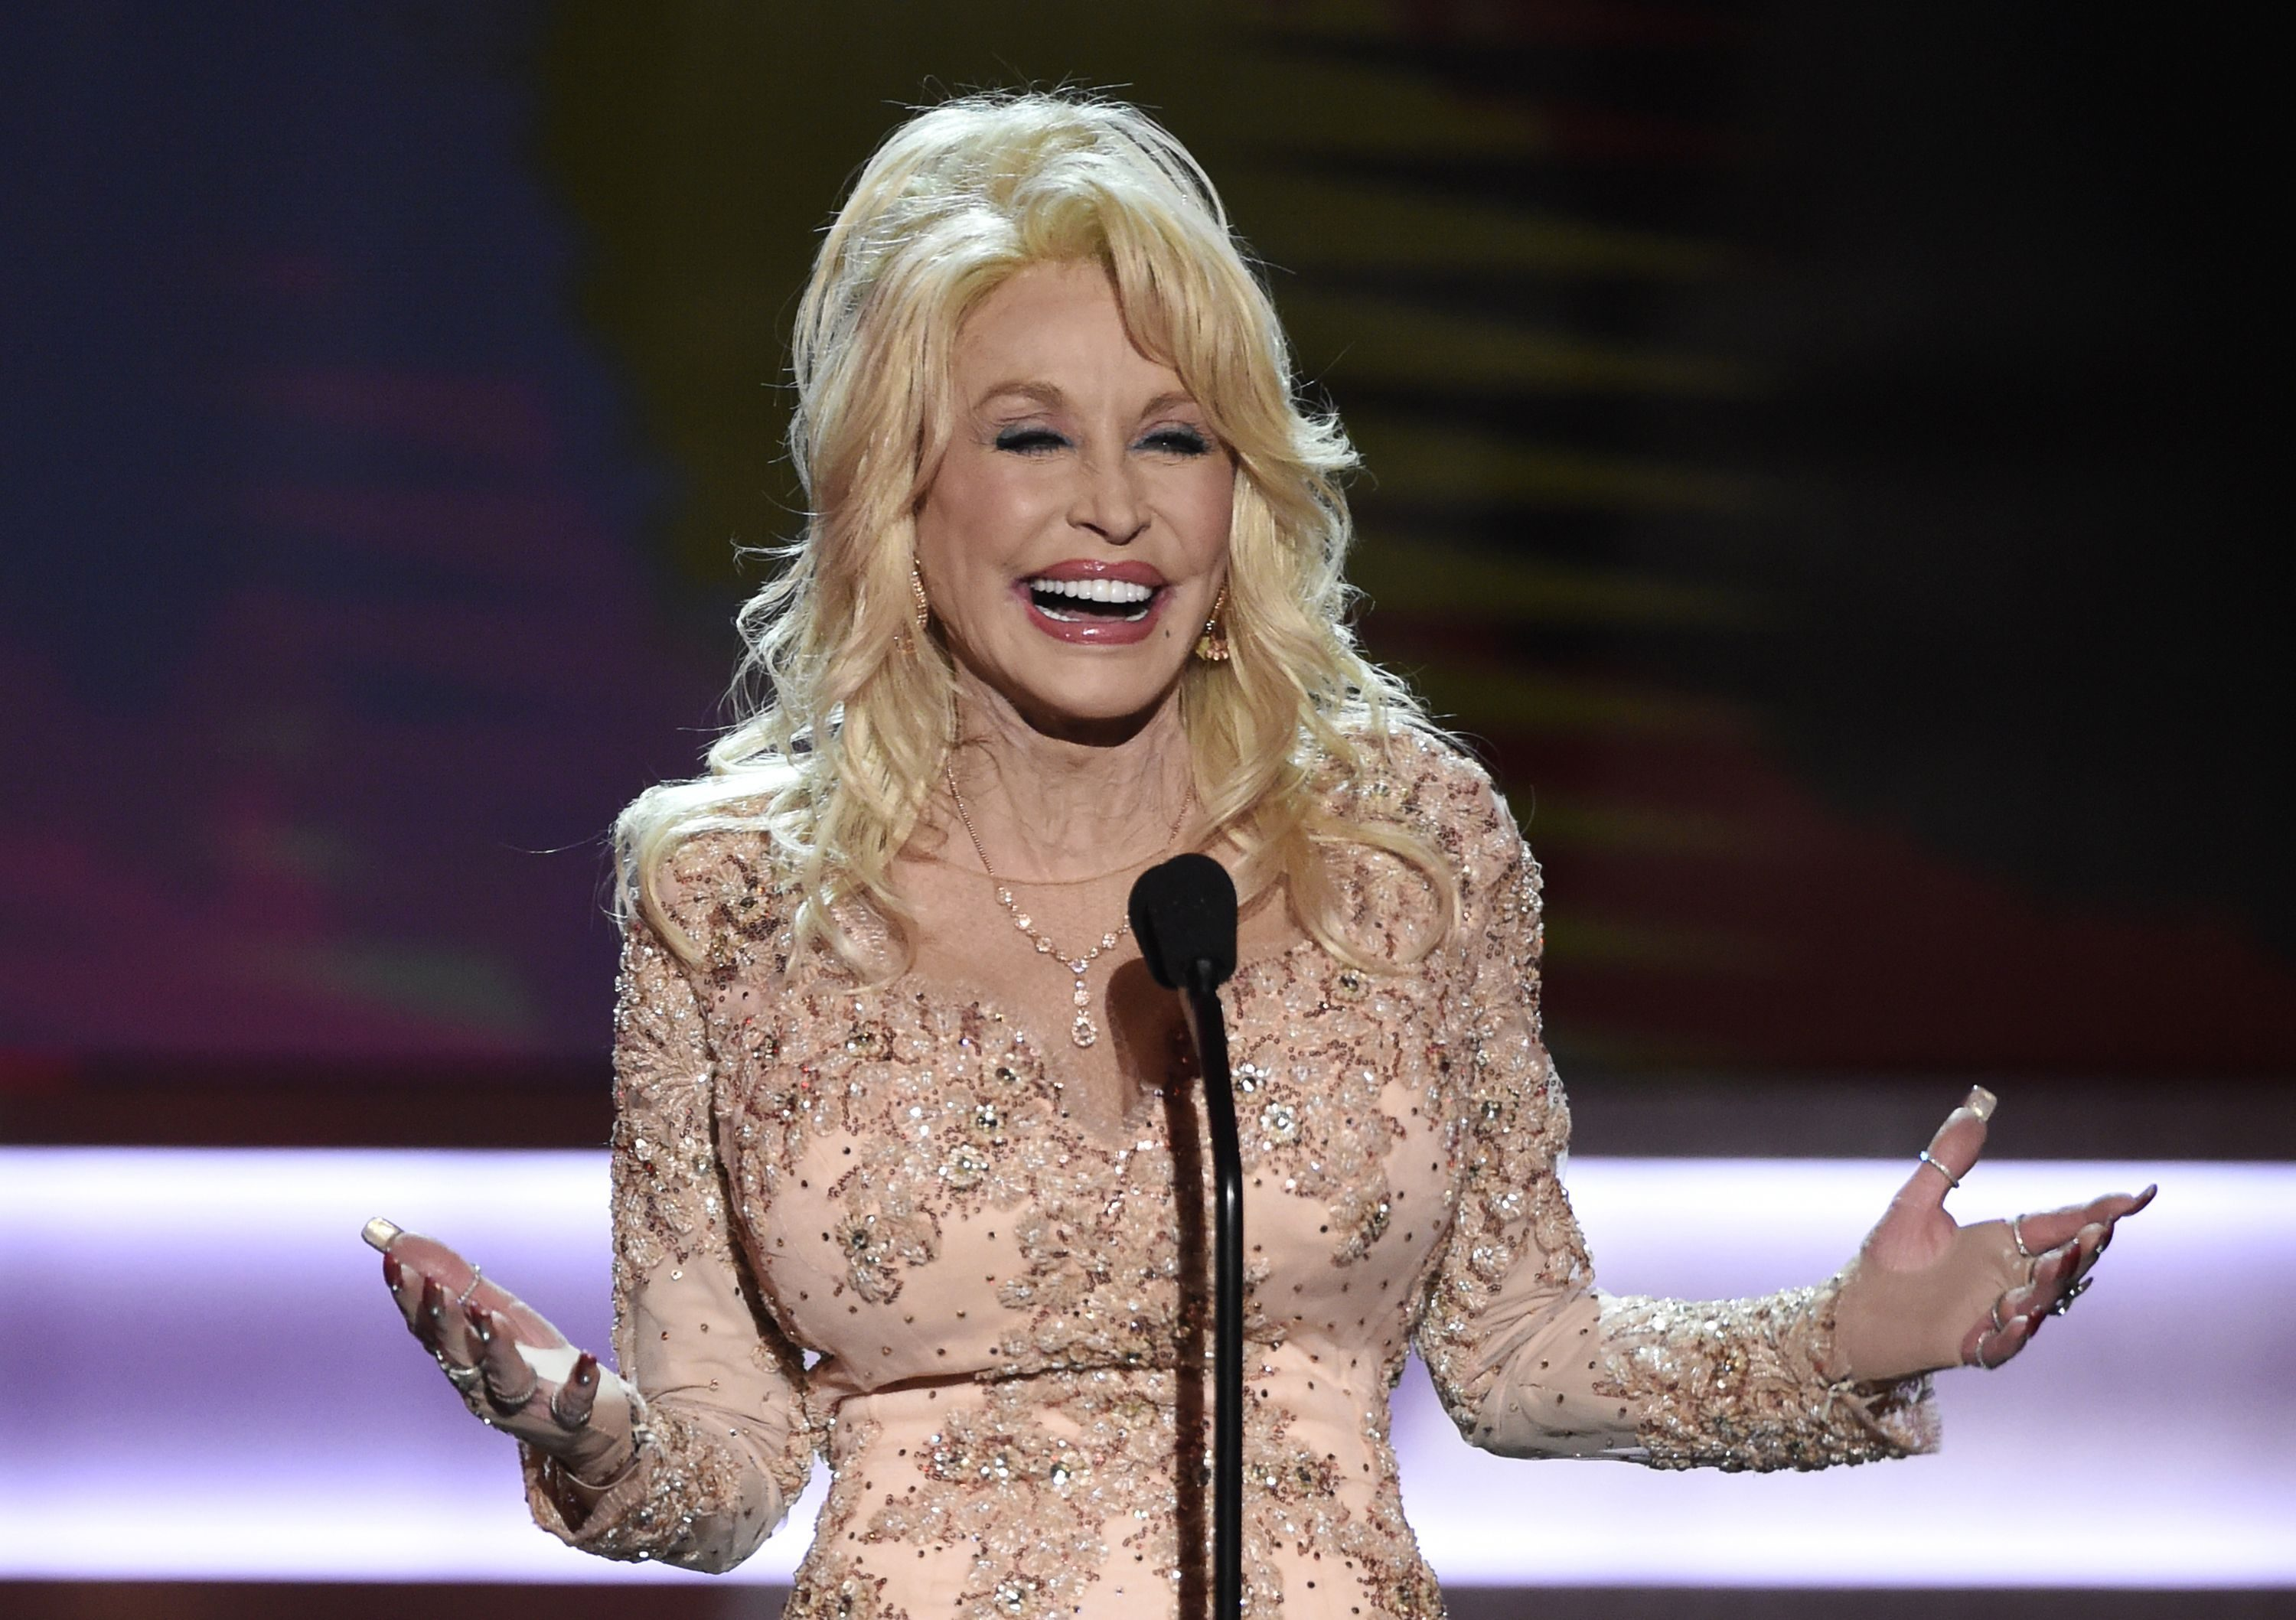 Dolly Parton presents the Lifetime Achievement Award at the 23rd annual Screen Actors Guild Awards at the Shrine Auditorium & Expo Hall in Los Angeles. Partonâ?™s My People Fund has issued monthly checks to hundreds of people who lost their homes in deadly wildfires that ravaged East Tennessee in 2016